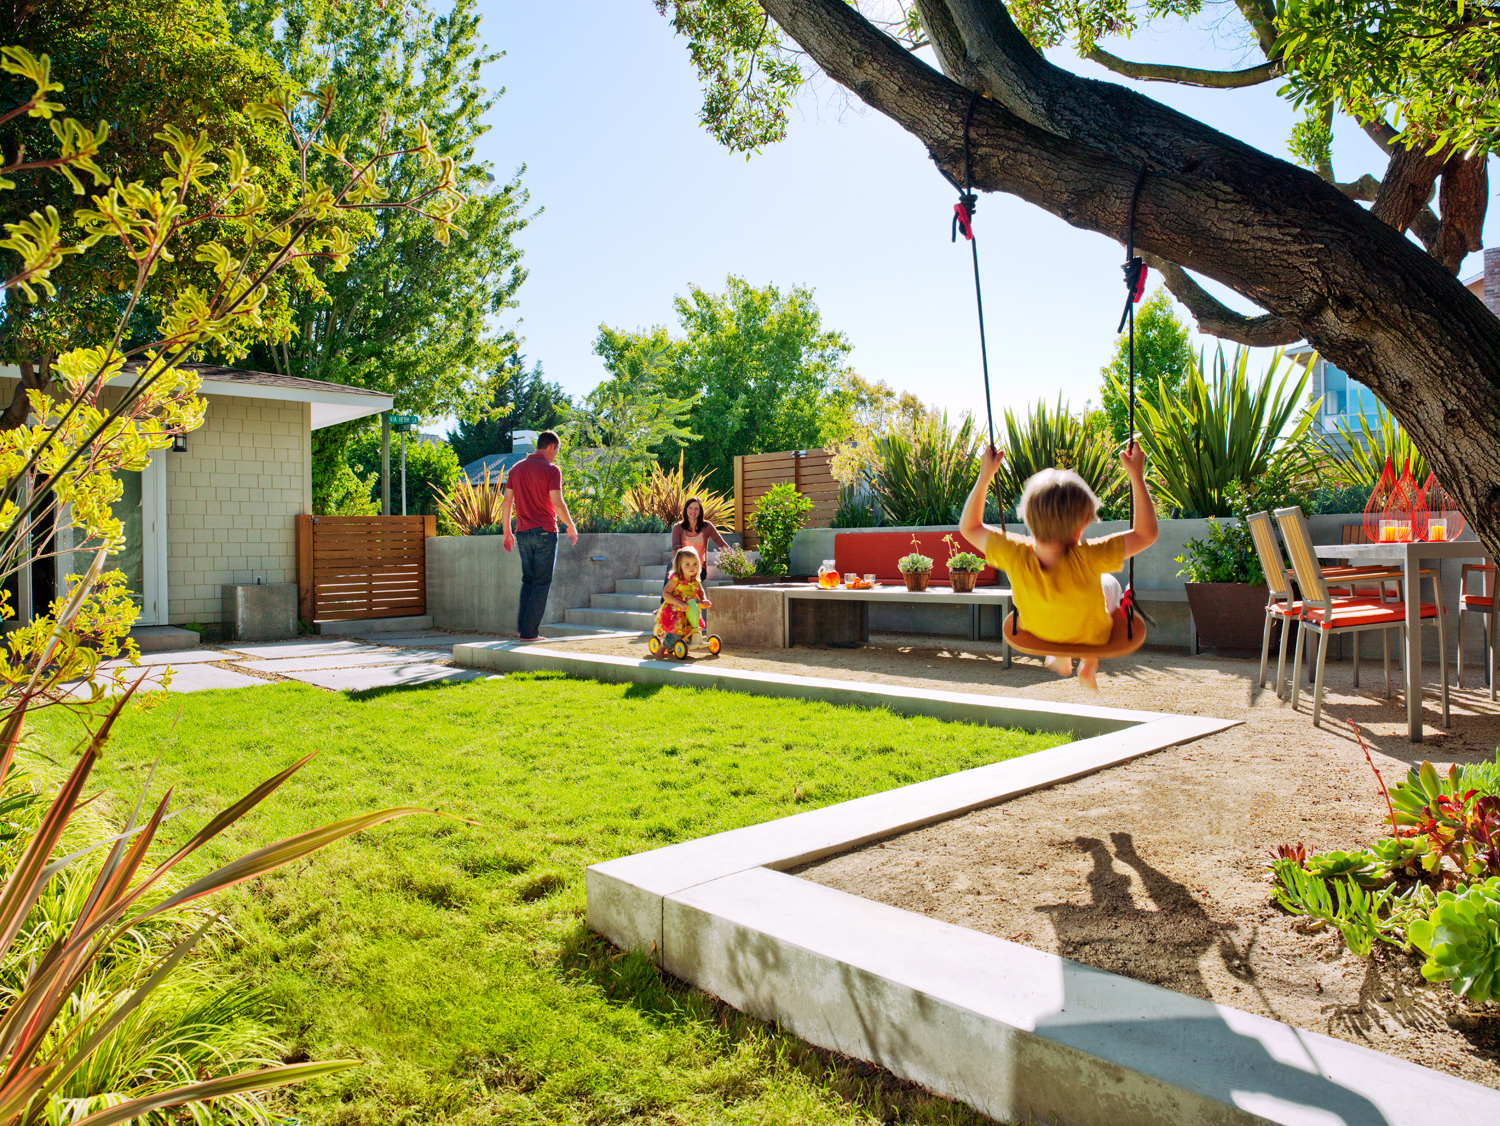 Awesome Backyard Ideas For Kids Sunset Magazine pertaining to 13 Smart Initiatives of How to Make Cool Backyards Ideas